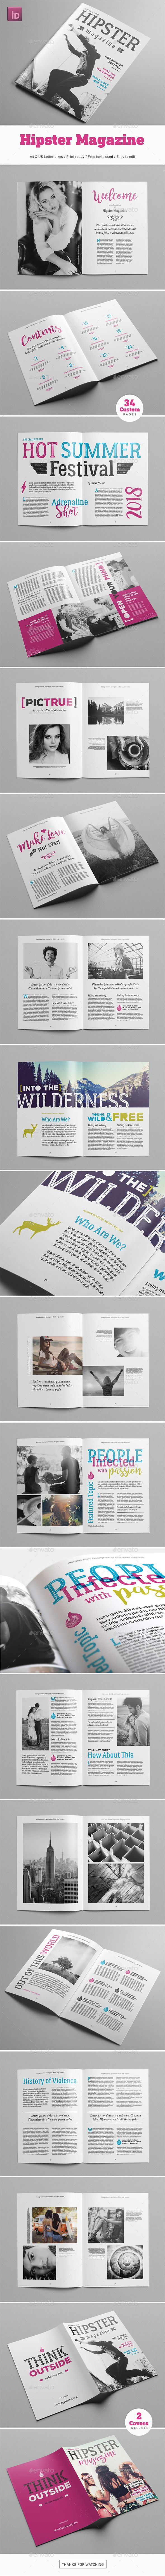 Hipster Magazine | Indesign magazine templates, Template and Magazines